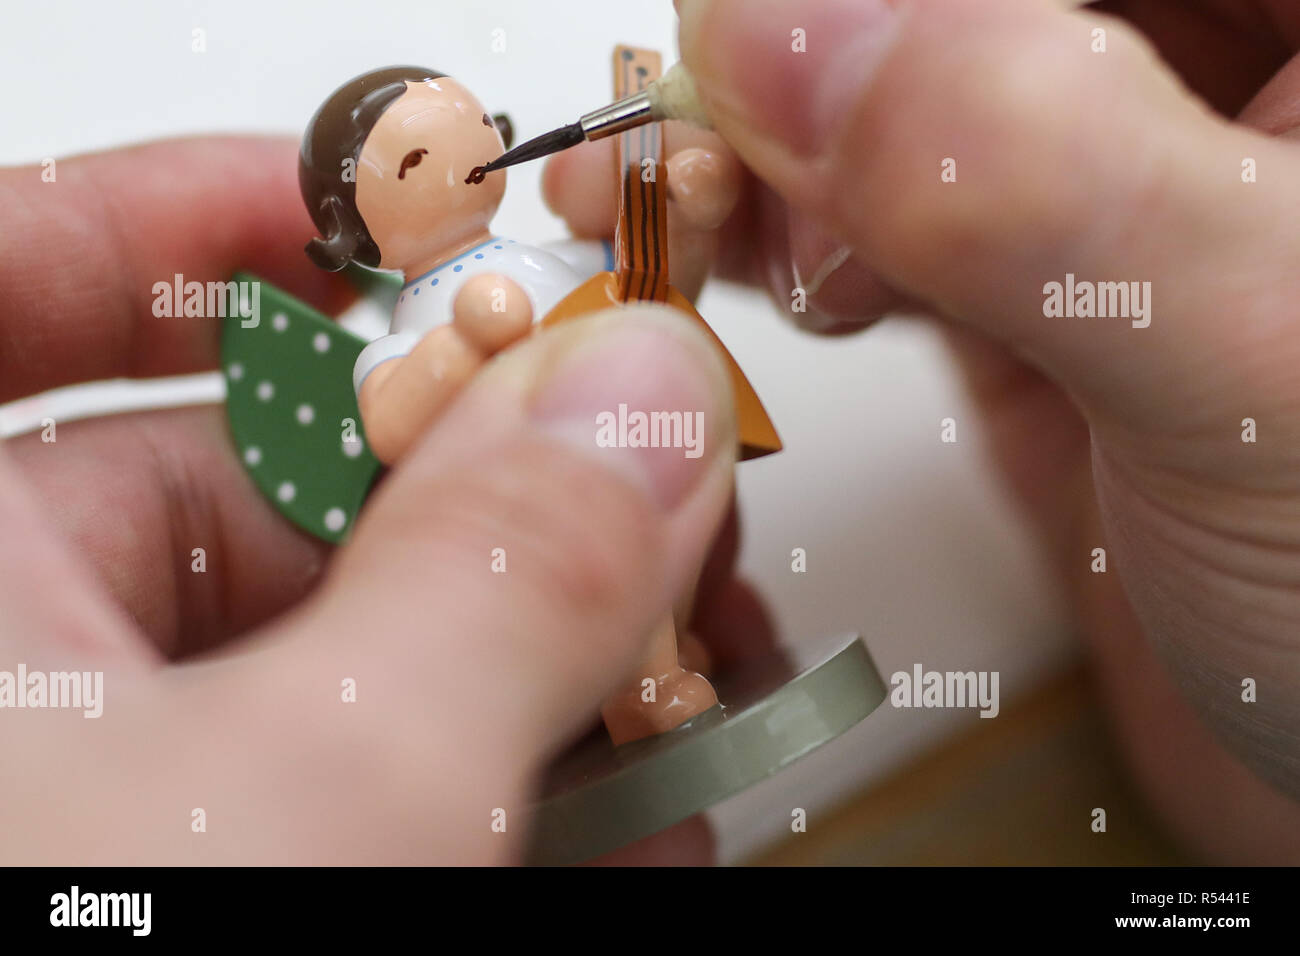 08 November 2018, Saxony, Grünhainichen: An employee of the Wendt&Kühn manufactory paints the face of an angel figure. Carving and the production of wooden toys are still an important branch of the economy in the Erzgebirge. The spectrum ranges from the classic two-man family business to large medium-sized companies. With almost 200 employees, Wendt&Kühn is one of the larger companies in the industry. Photo: Jan Woitas/dpa-Zentralbild/dpa - Stock Image